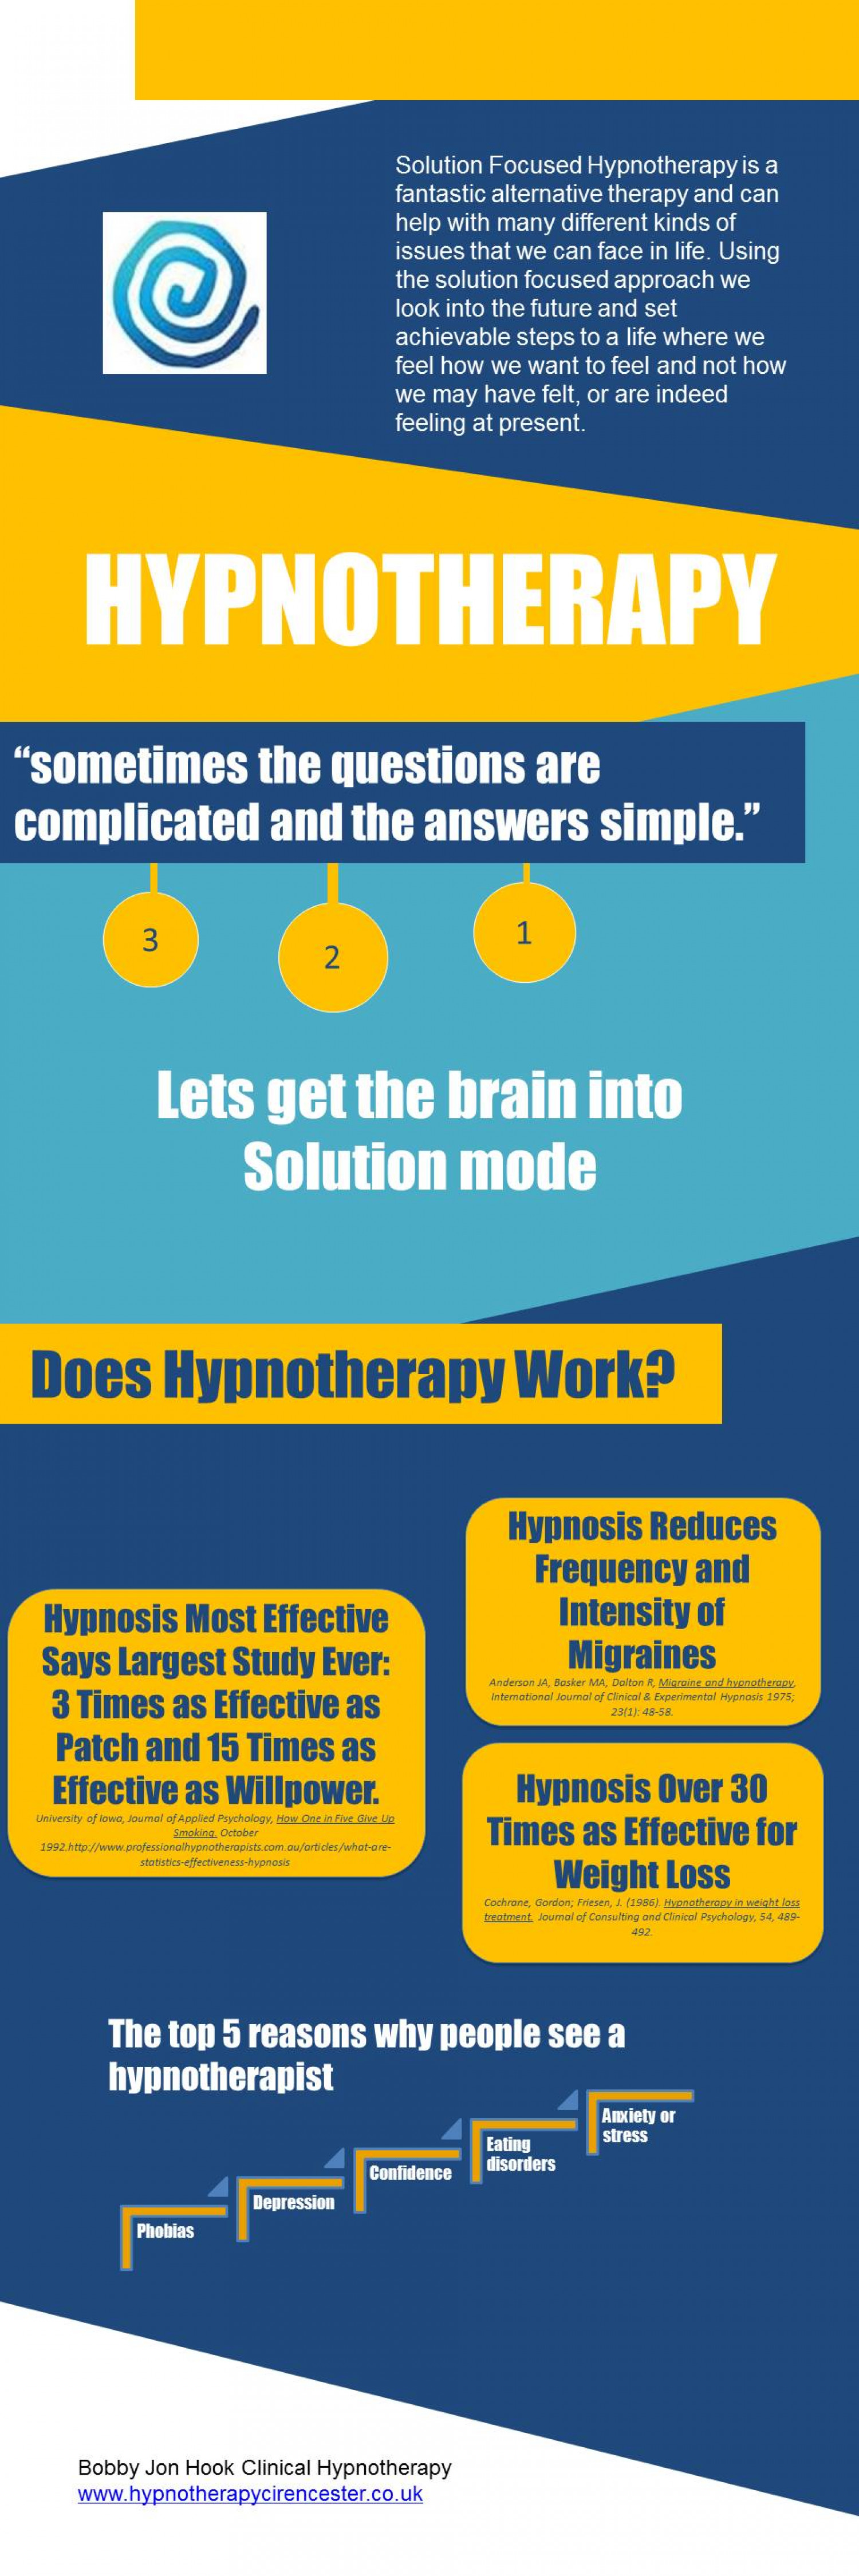 Does hypnotherapy work? Infographic